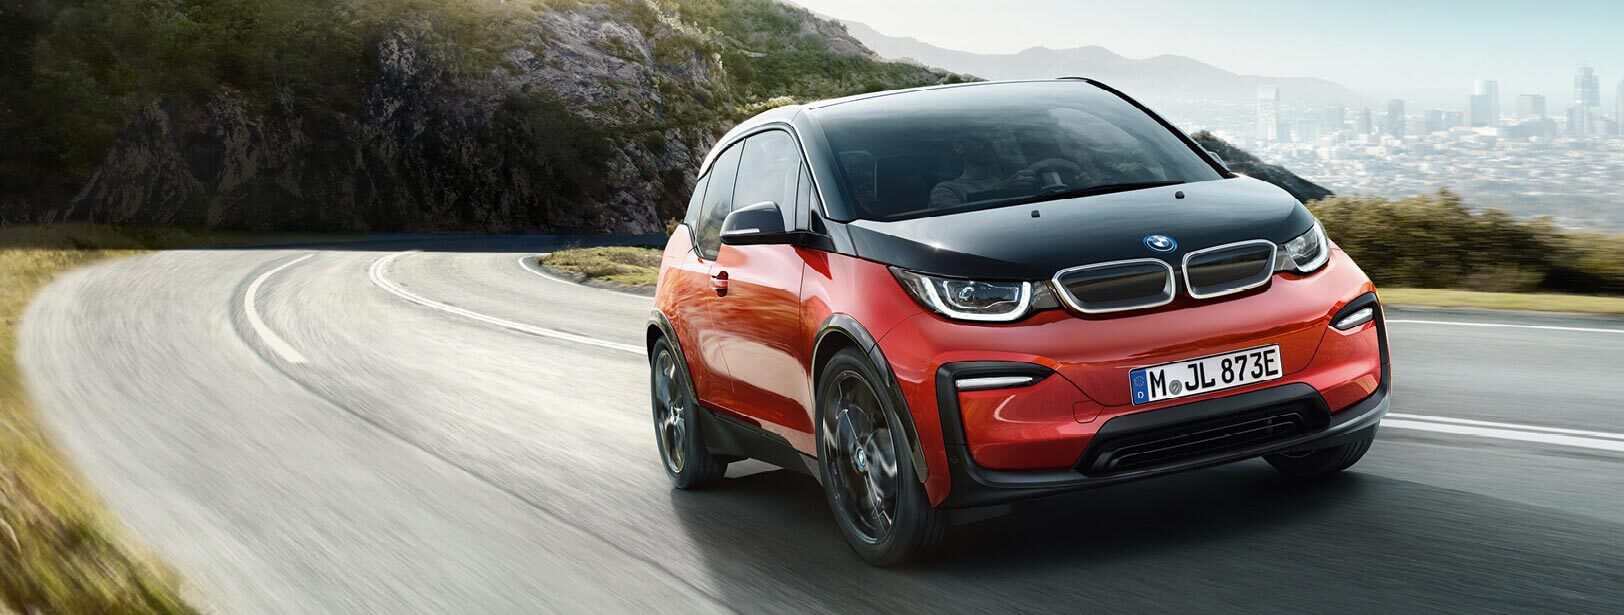 THE I3: DER BMW i3 120 AH.